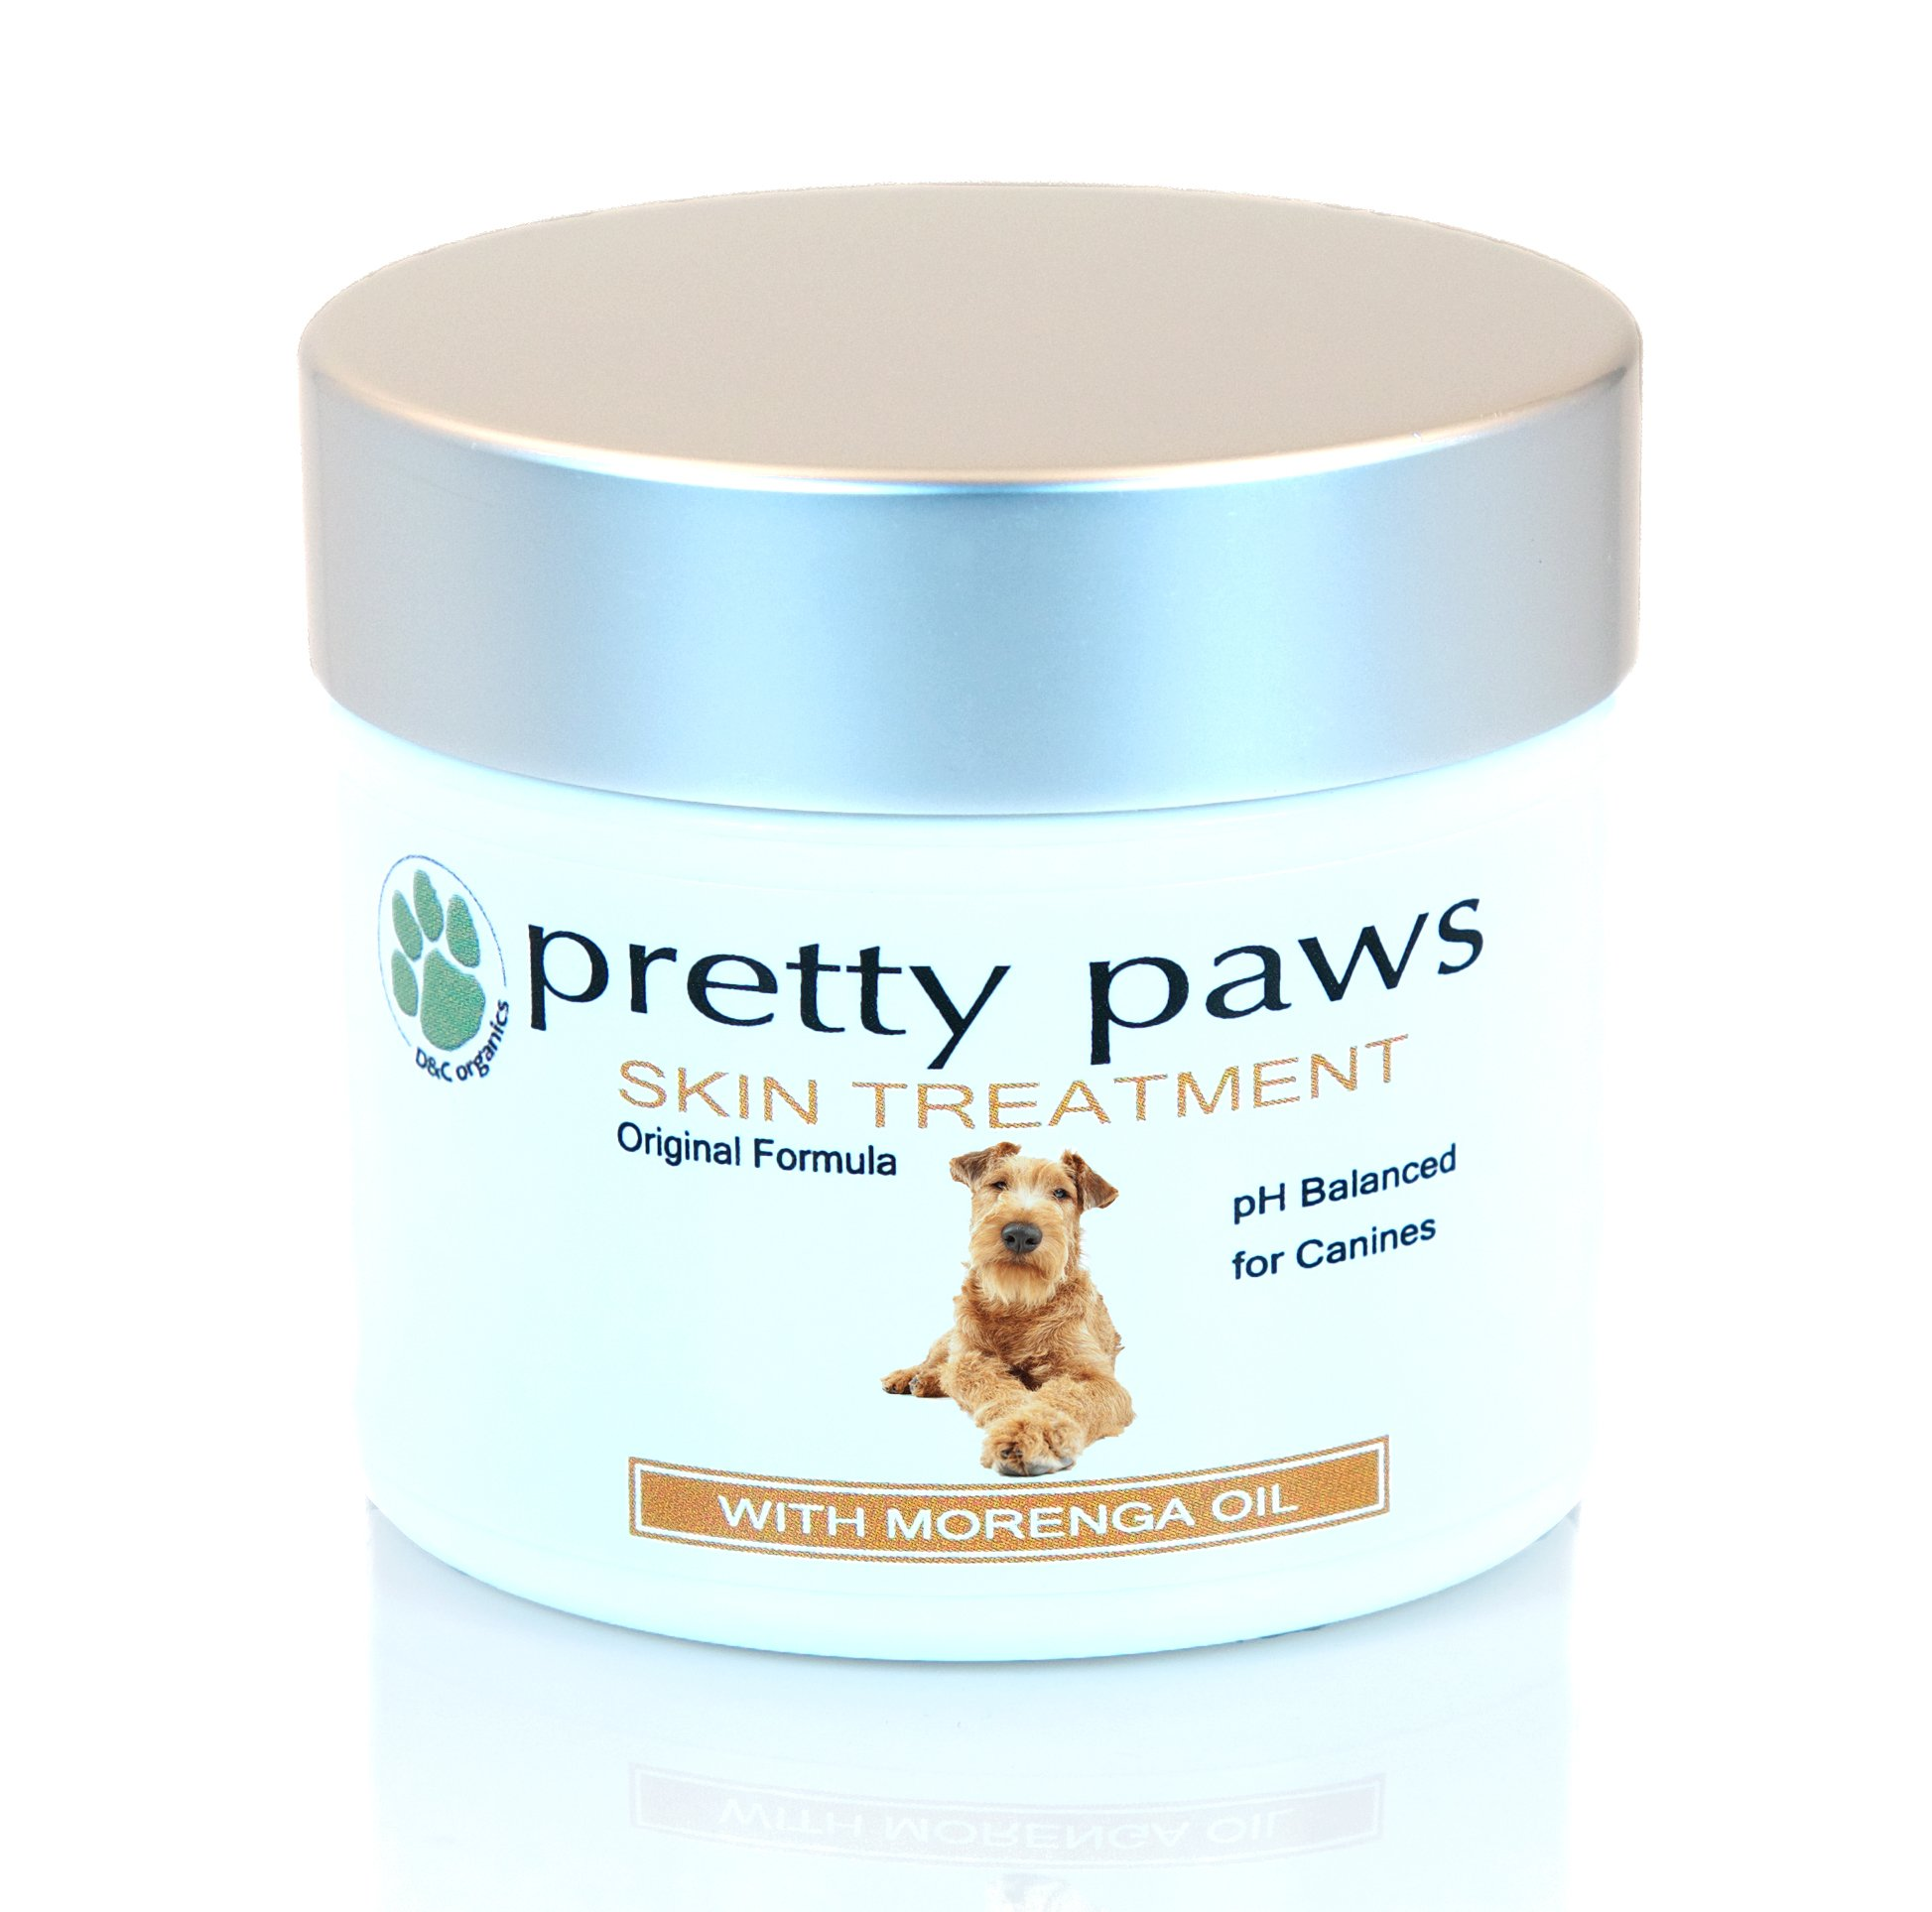 Itch and Hot Spot Pain Relief for Dogs. Treatment for Paw Disorders. Dermatitis - Infection, Dry Itchy Skin, Rashes, Bites & Allergic reactions. Antiseptic, Antifungal - CONCENTRATED Pretty Paws